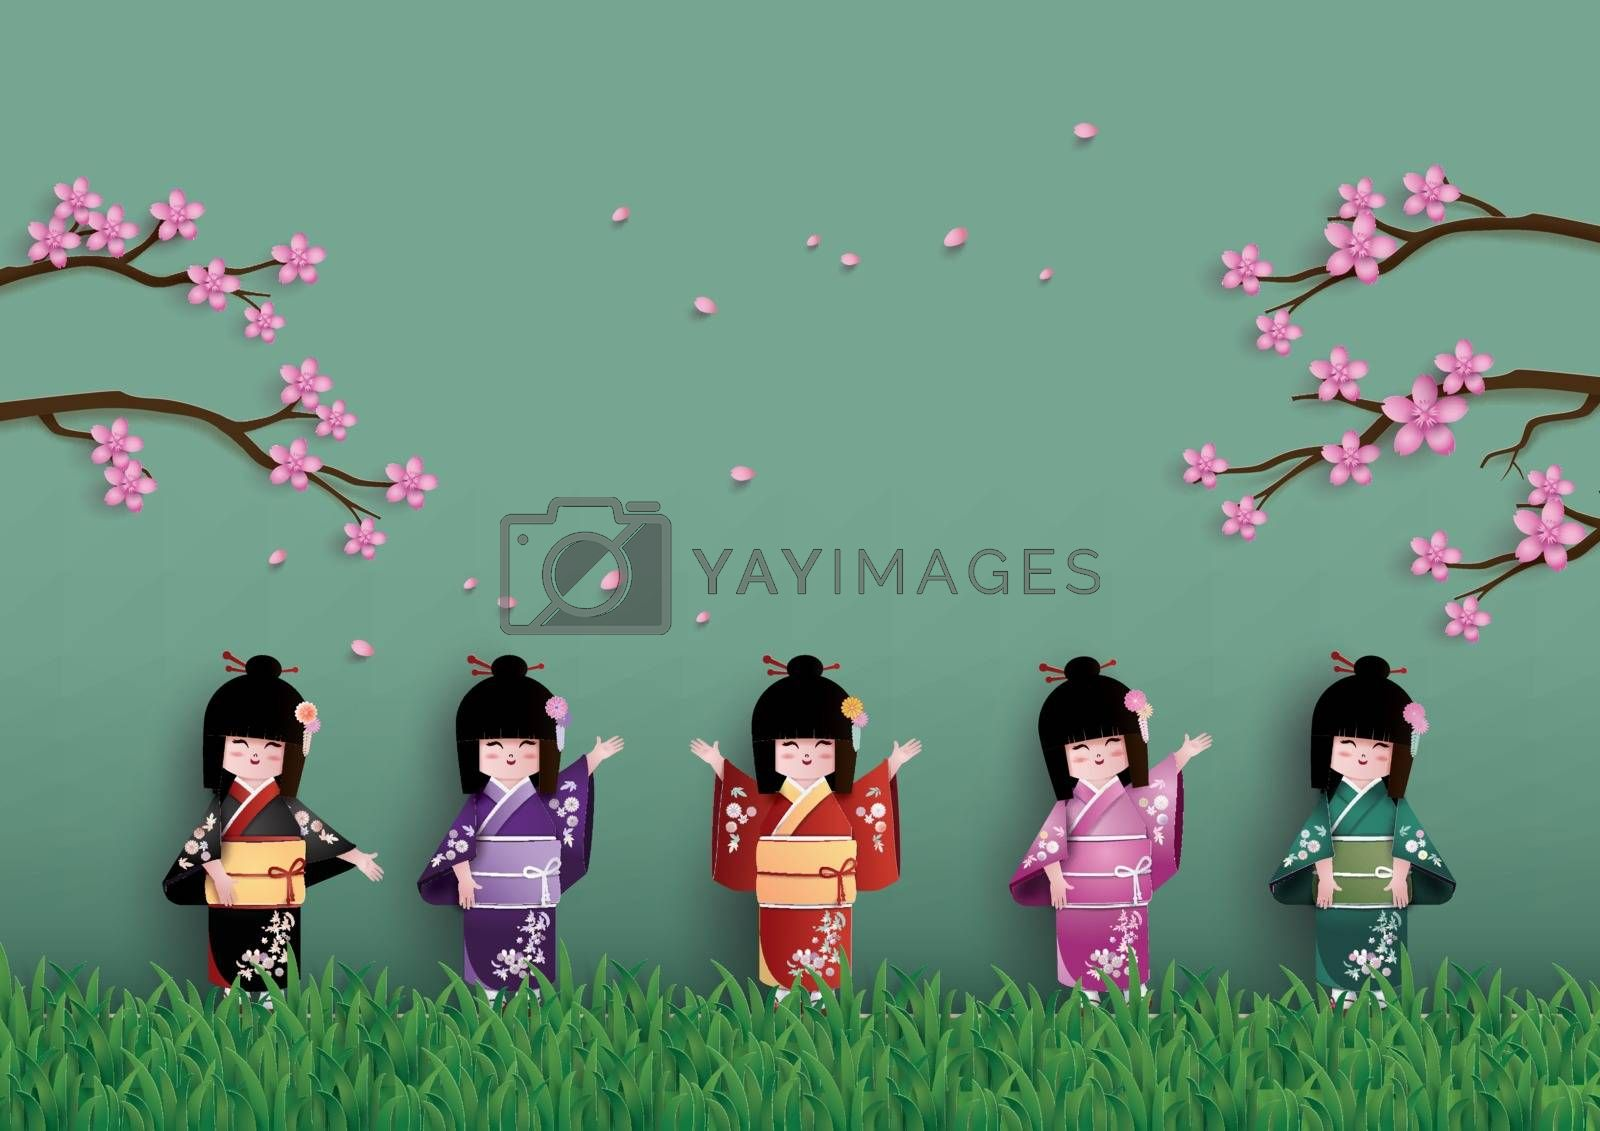 Illustration of nature with spring season, Japanese girls wearing national dress happily. Under the cherry (sakura) trees are blossoming.paper art and craft style.